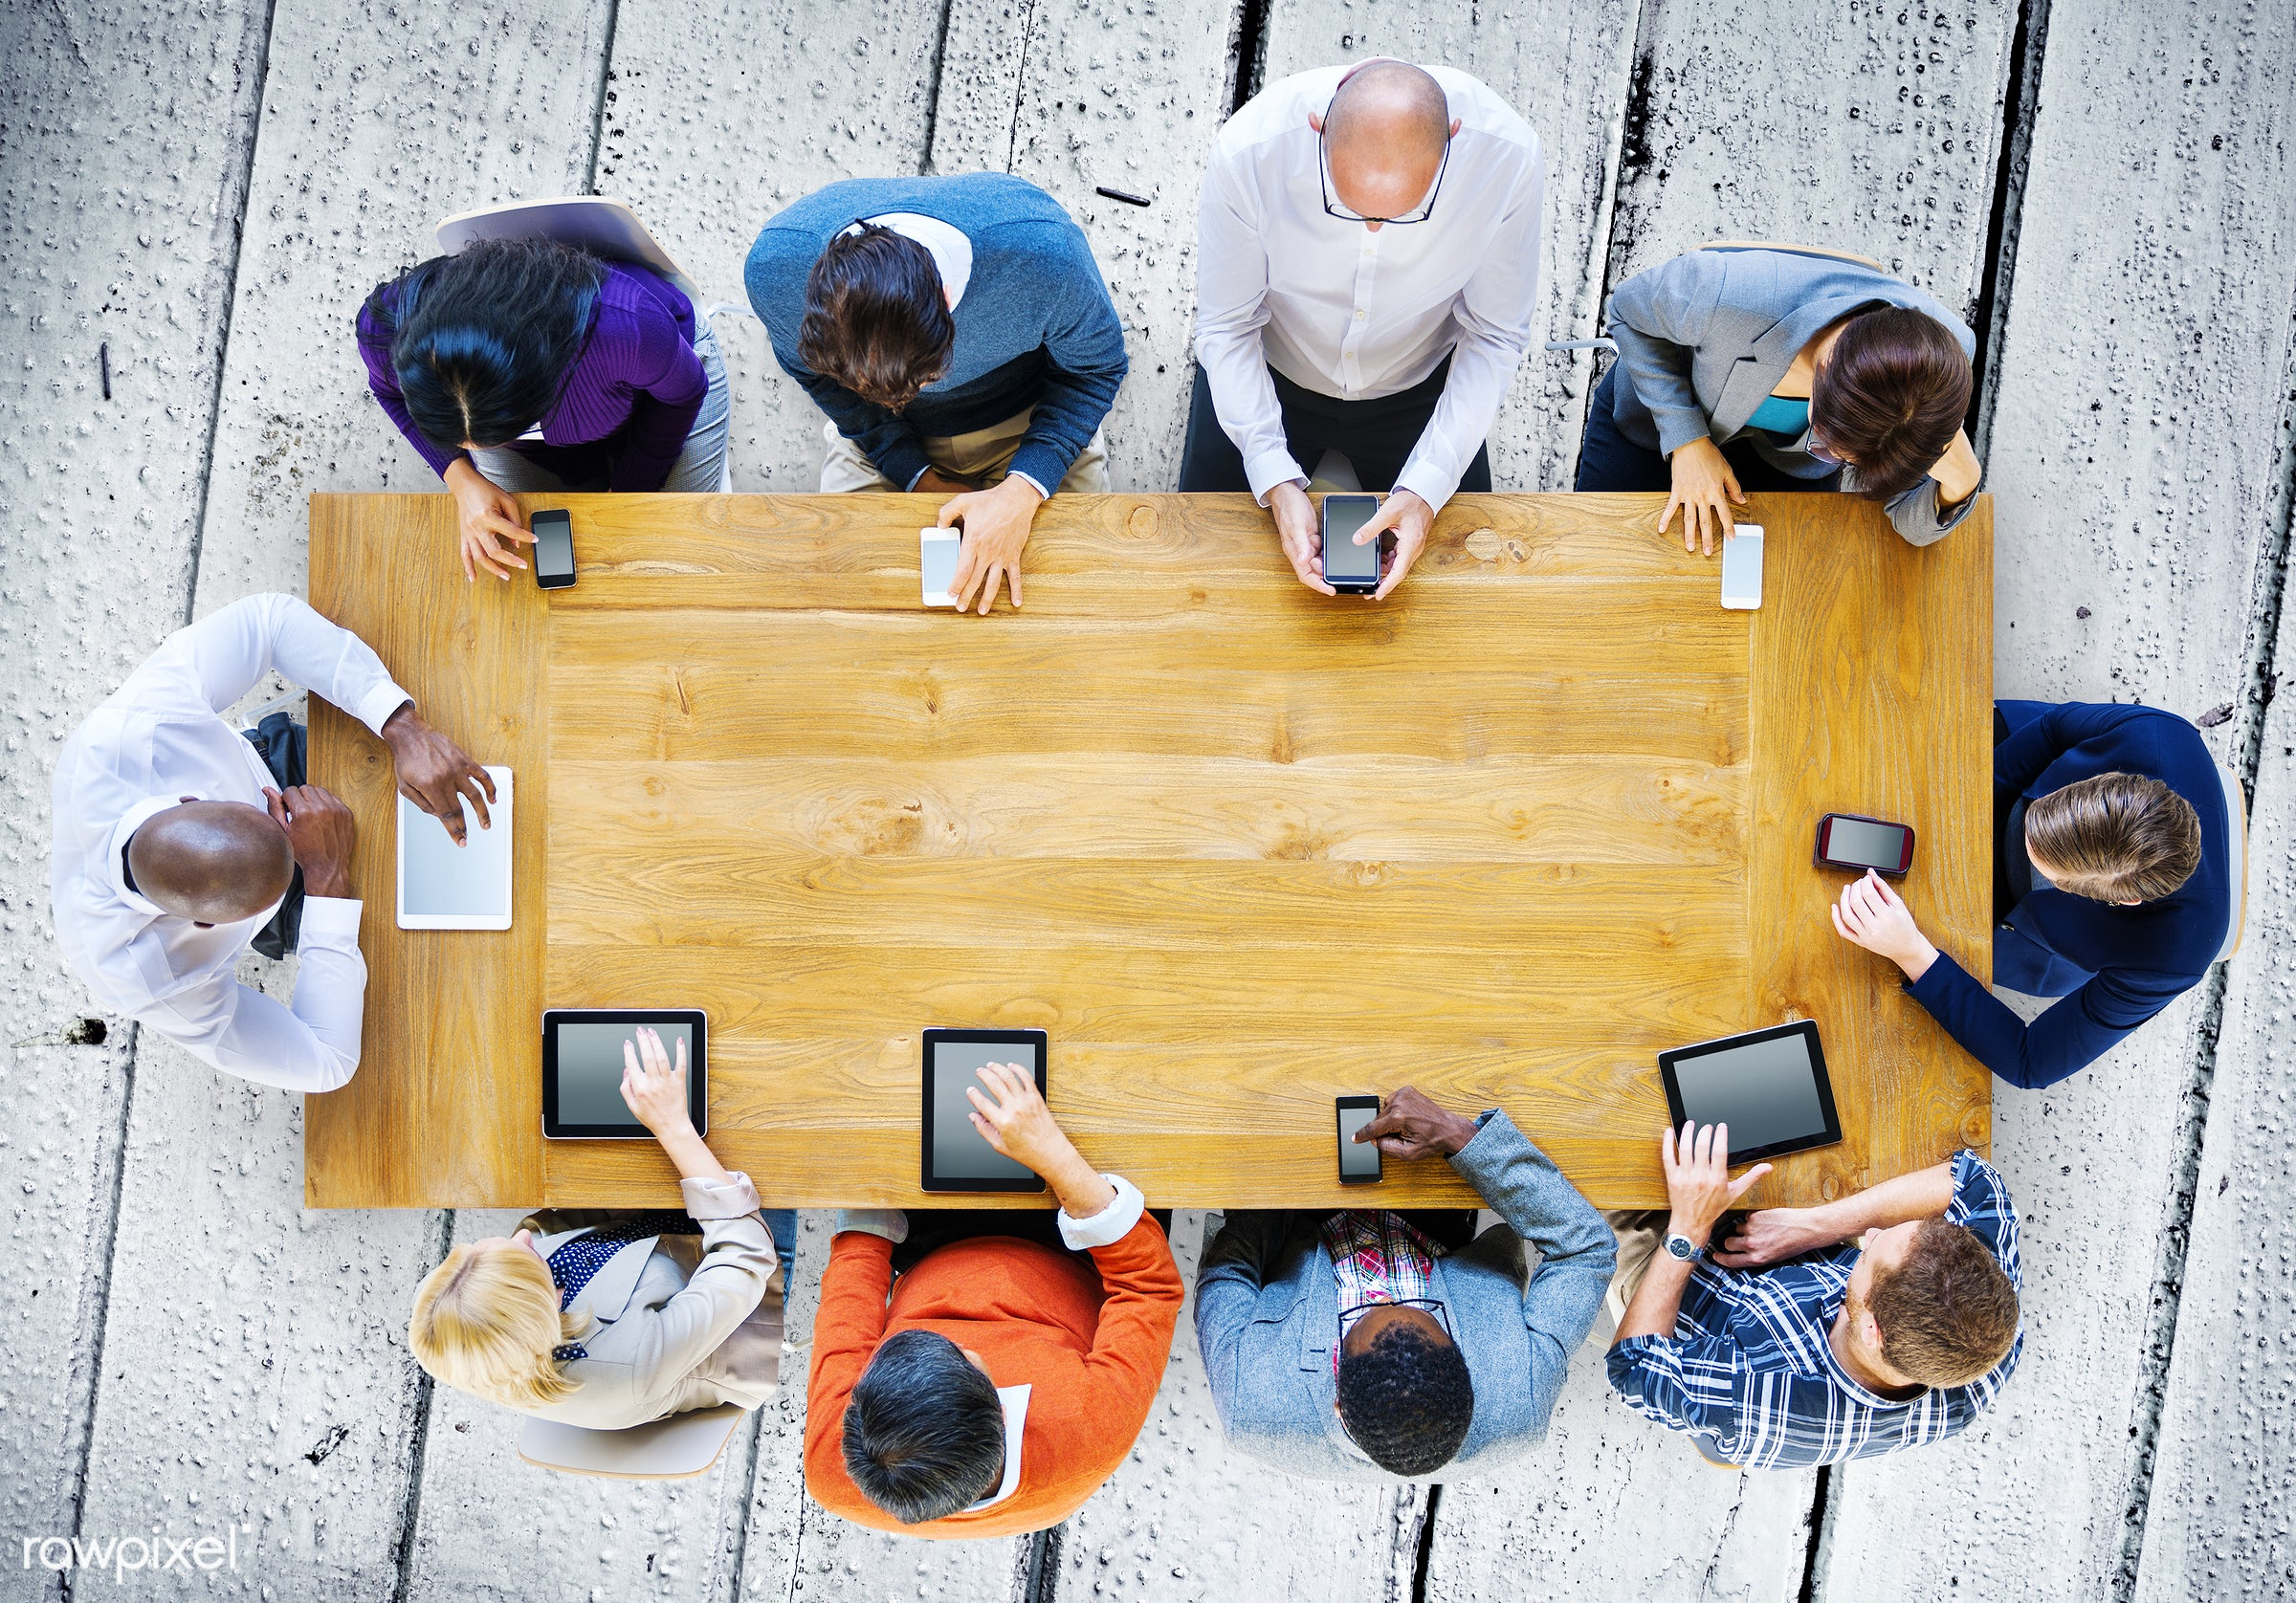 mobility, aerial view, backgrounds, brainstorming, business, business people, casual, classic, close-up, communication,...